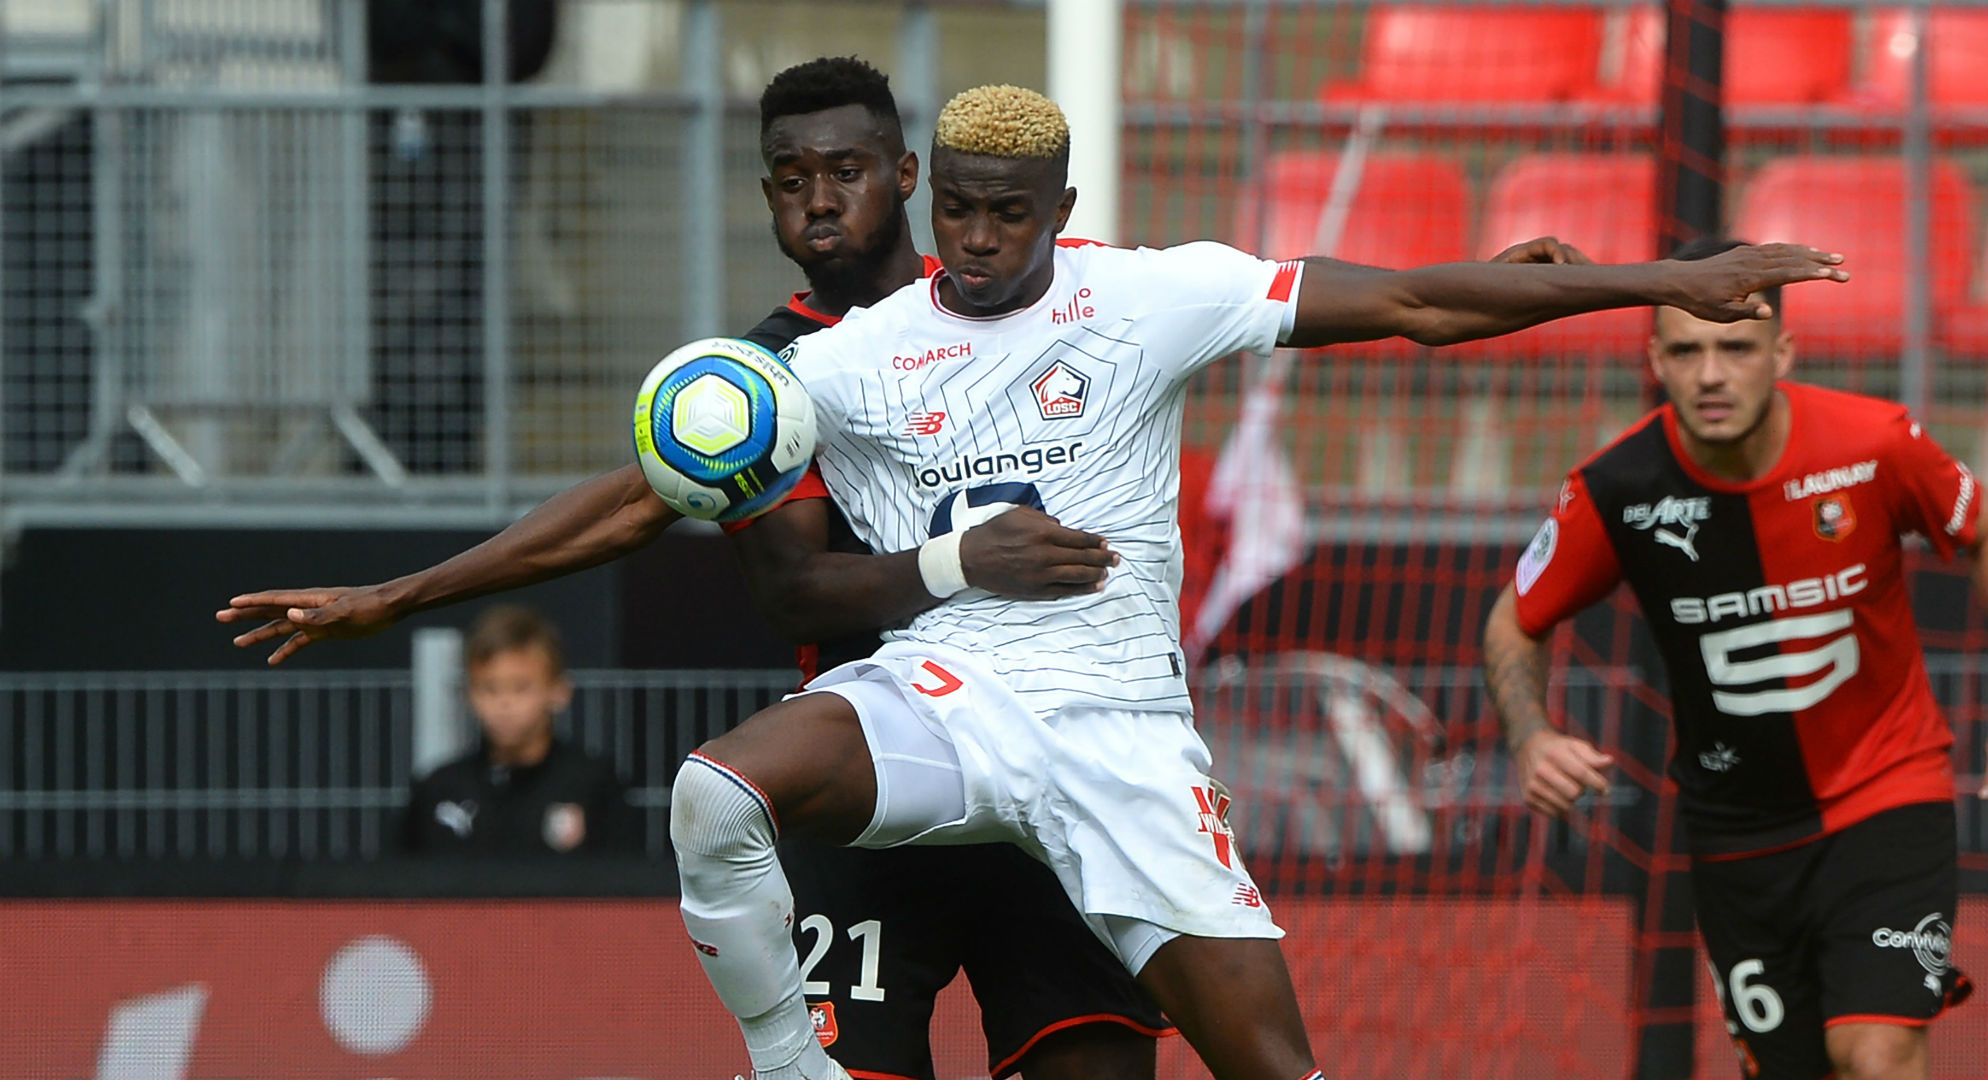 Osimhen, Aribo Earn Assists As Lille Draw At Rennes, Rangers Win At St. Johnstone